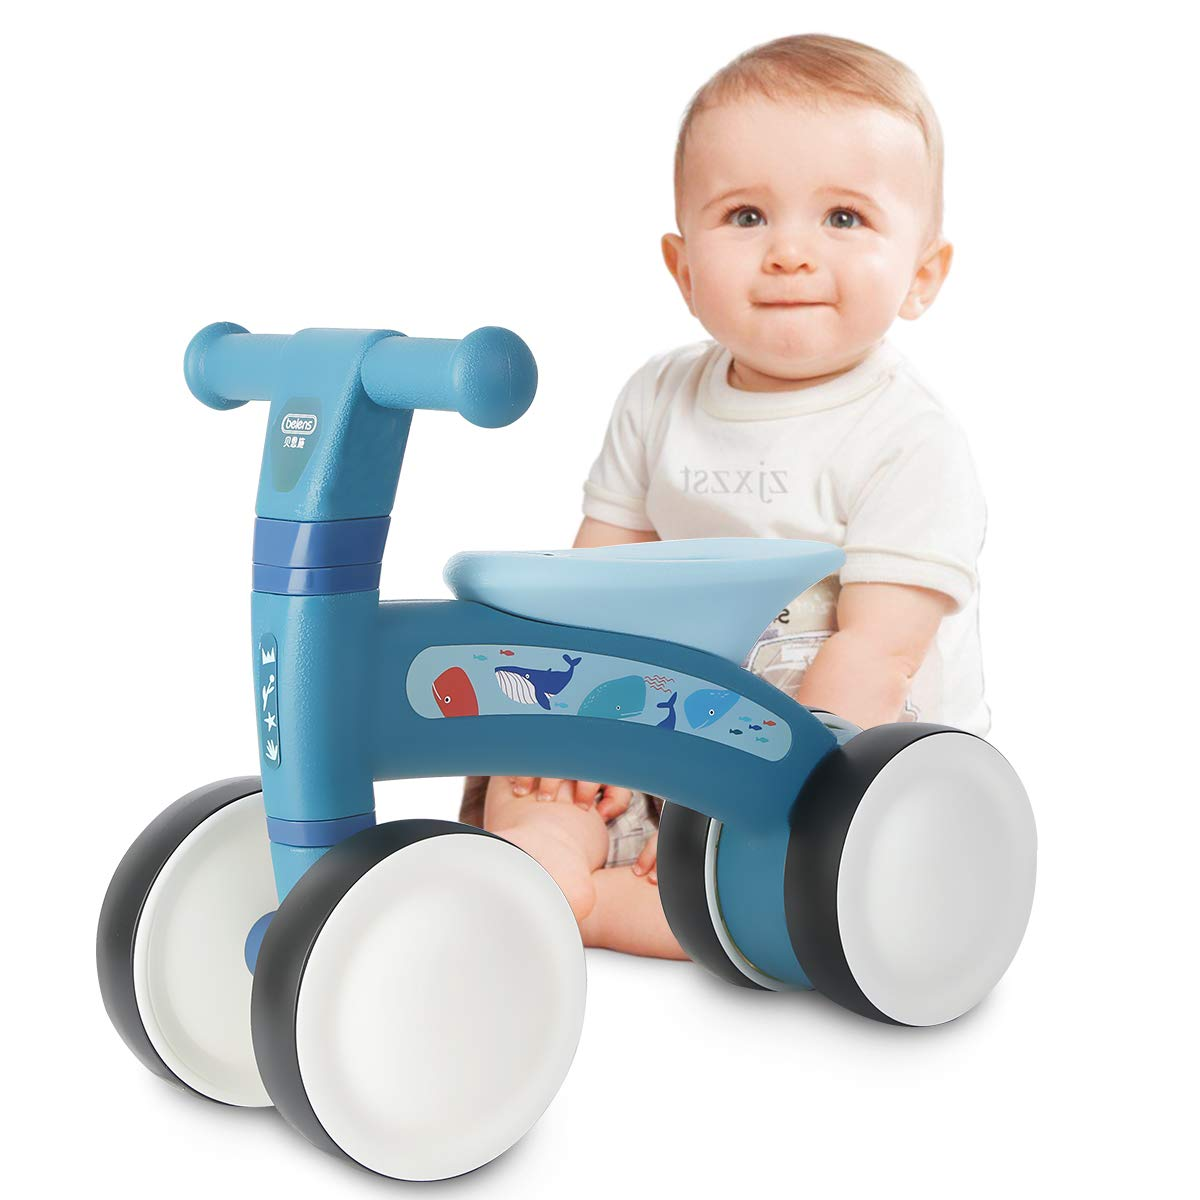 beiens Baby Balance Bikes, Baby Bicycle for 1 Year Old, Toddler Bike Toddler Riding Toys for 9 Months - 24 Months Boys Girls No Pedal 4 Training Wheels Baby First Birthday Gift Bike